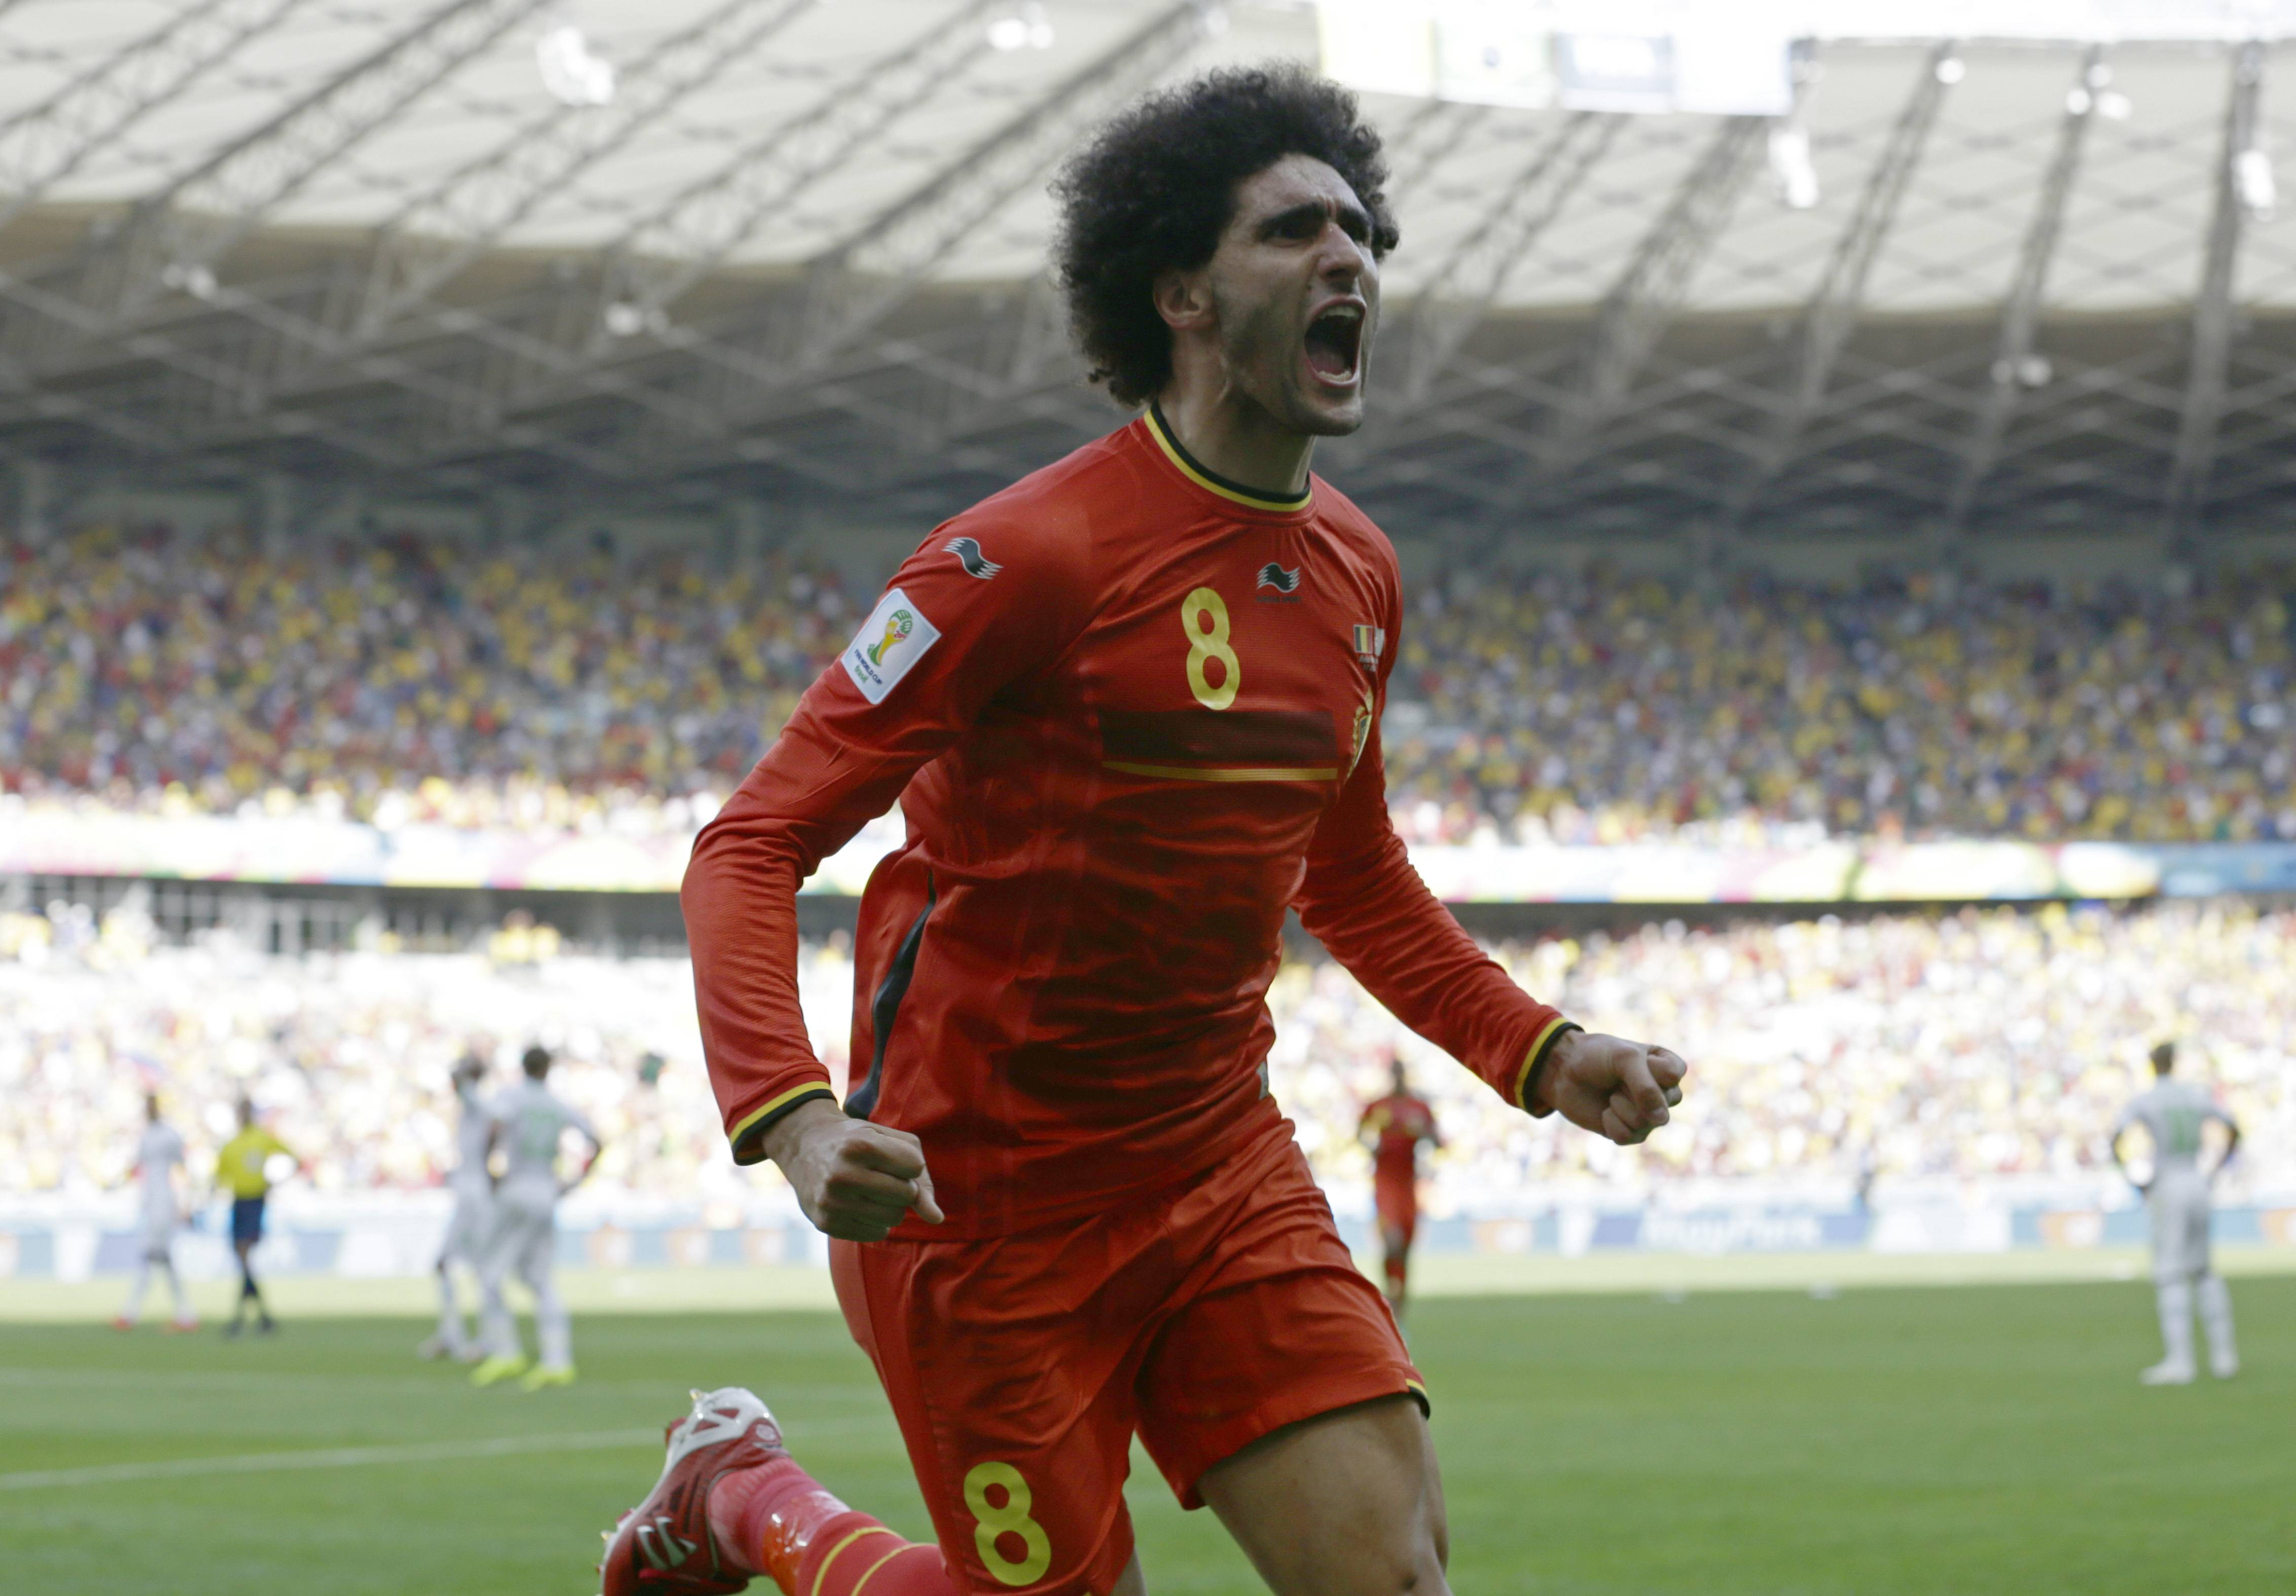 Belgium's Marouane Fellaini celebrates after scoring his side's first goal during the group H World Cup soccer match between Belgium and Algeria at the Mineirao Stadium in Belo Horizonte, Brazil, Tuesday.